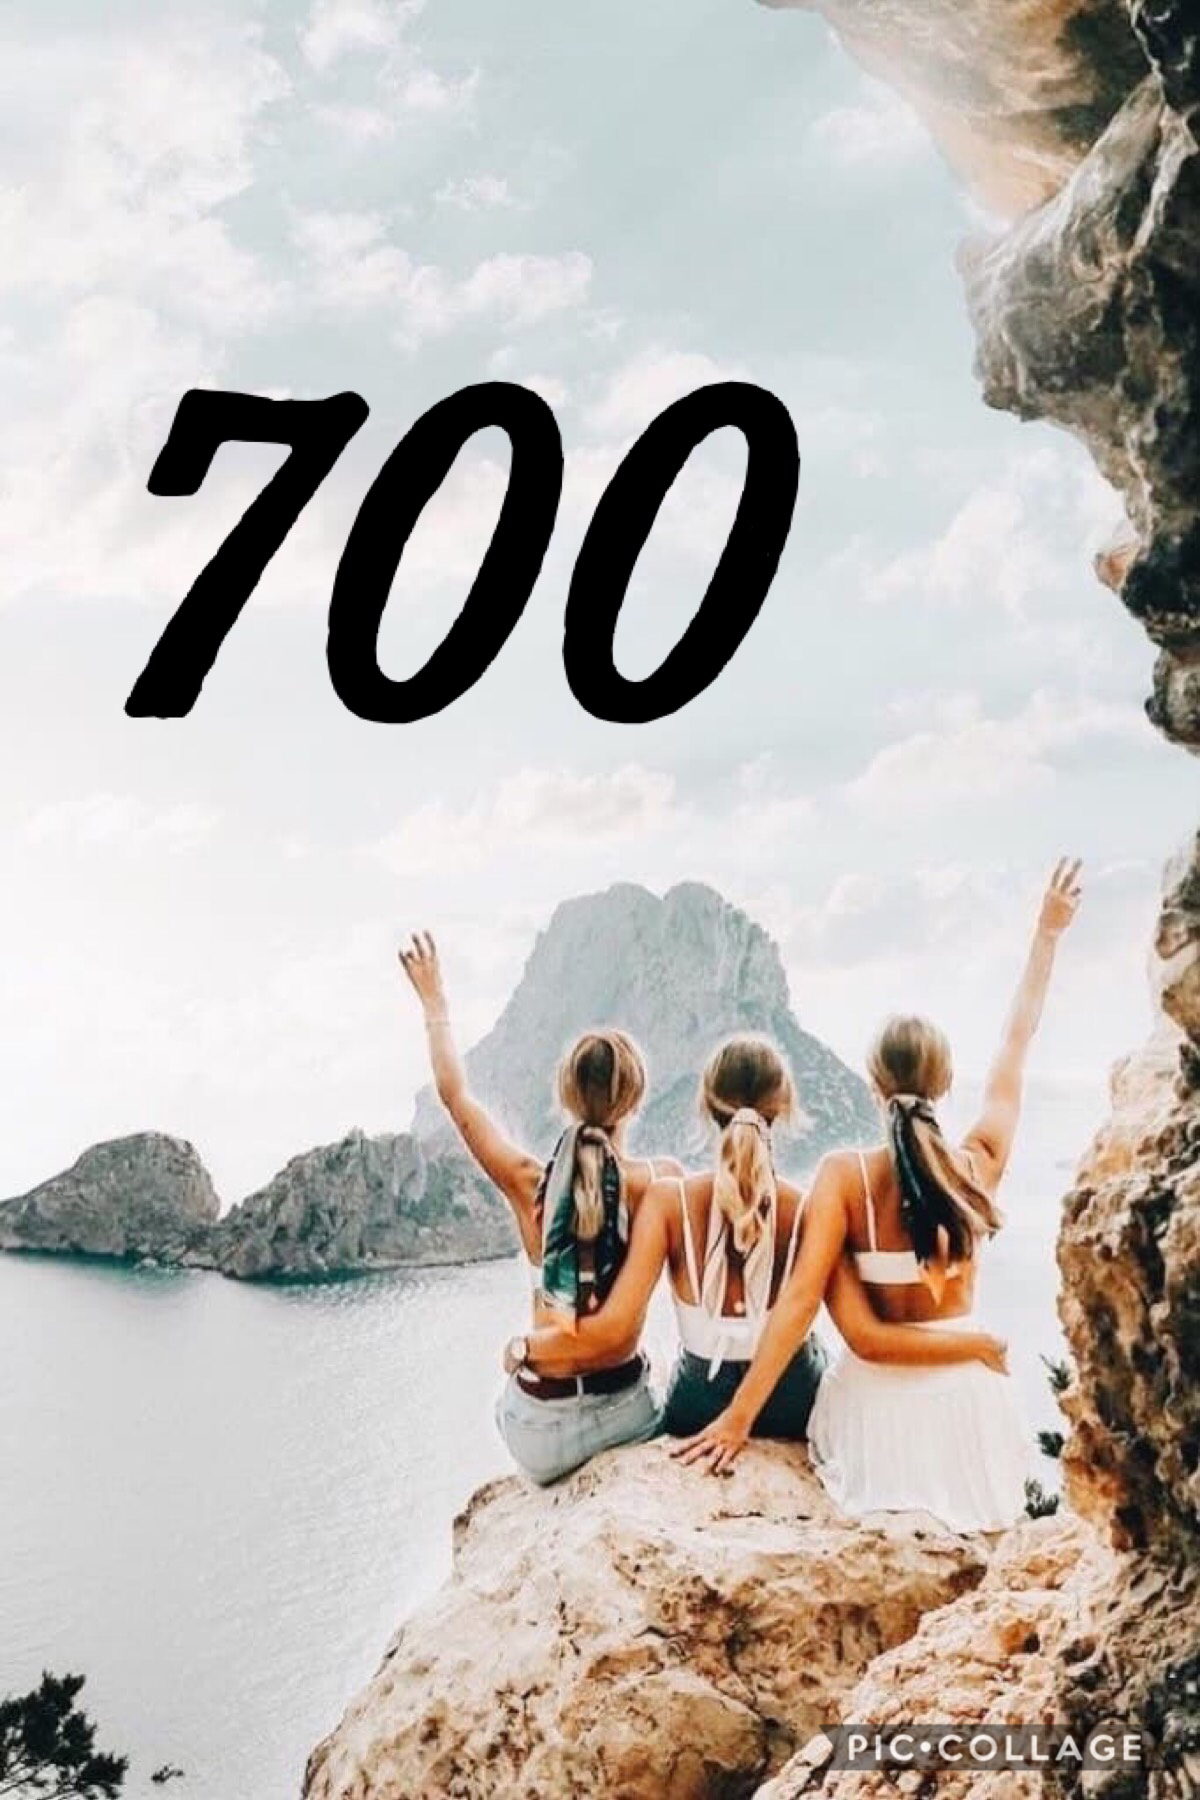 Wow fam we reached 700!!!!!!